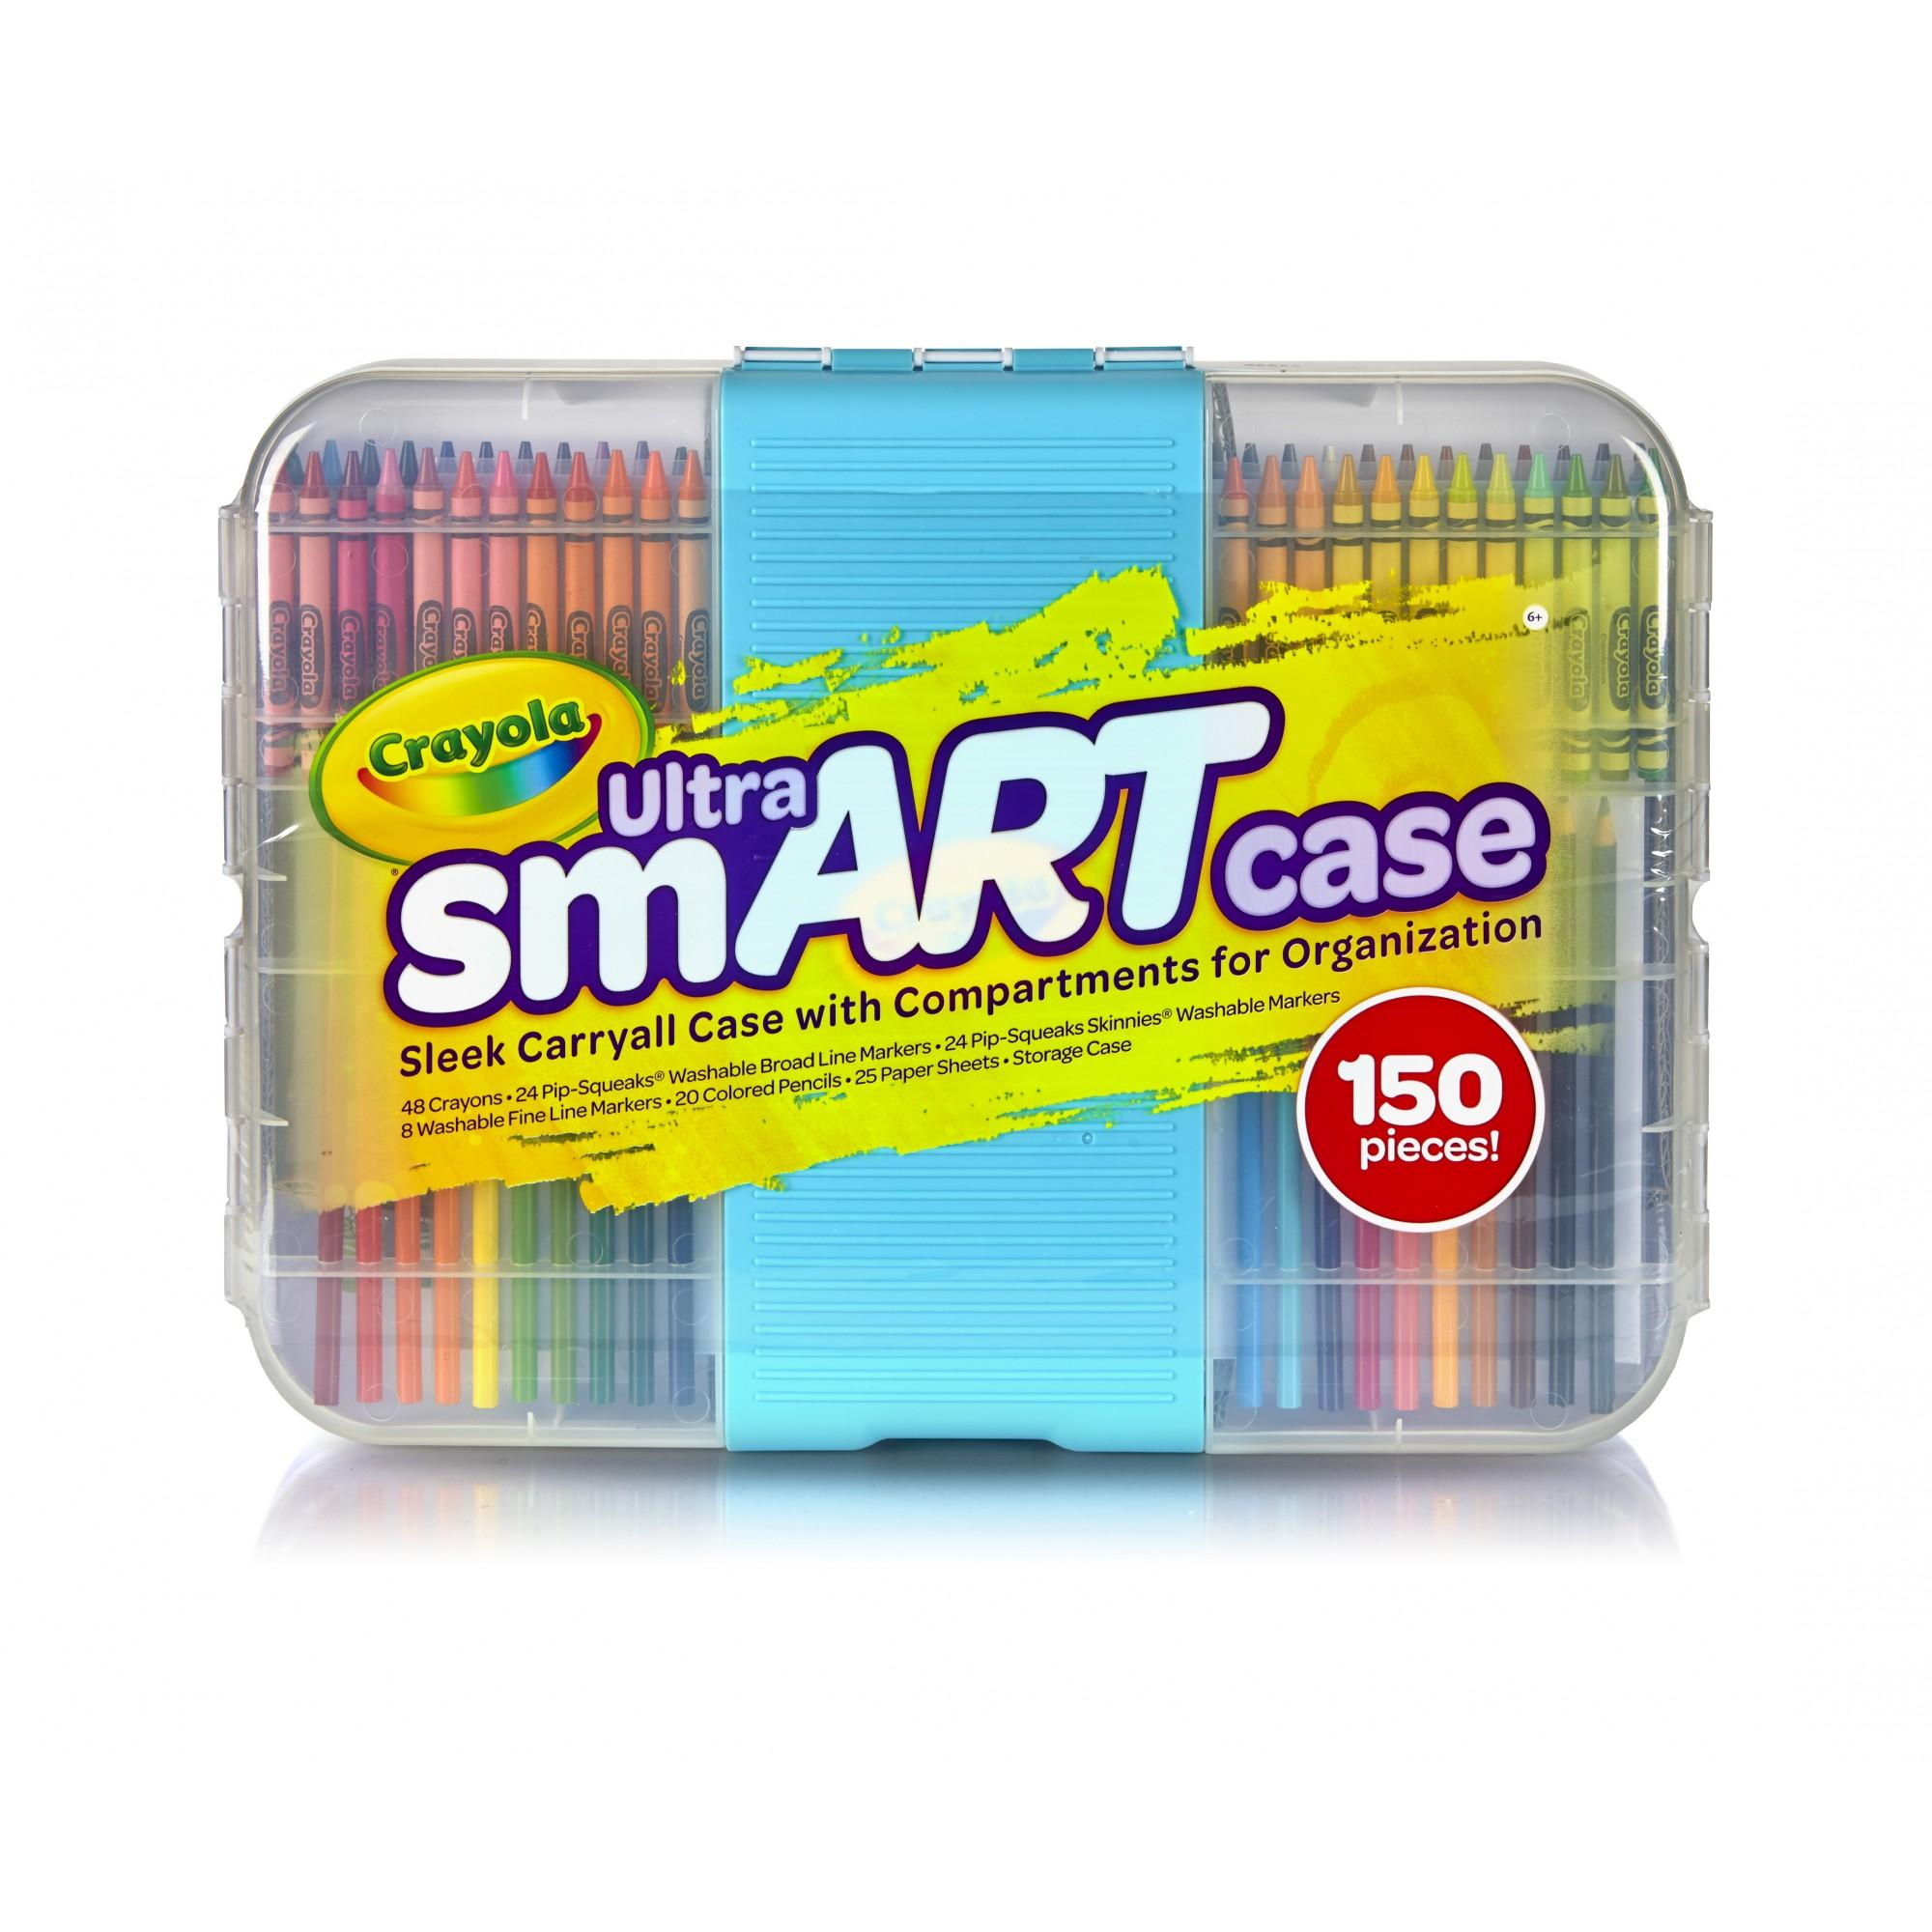 Crayola Ultra Smart Case, Coloring And Art Supplies, 150 Pieces